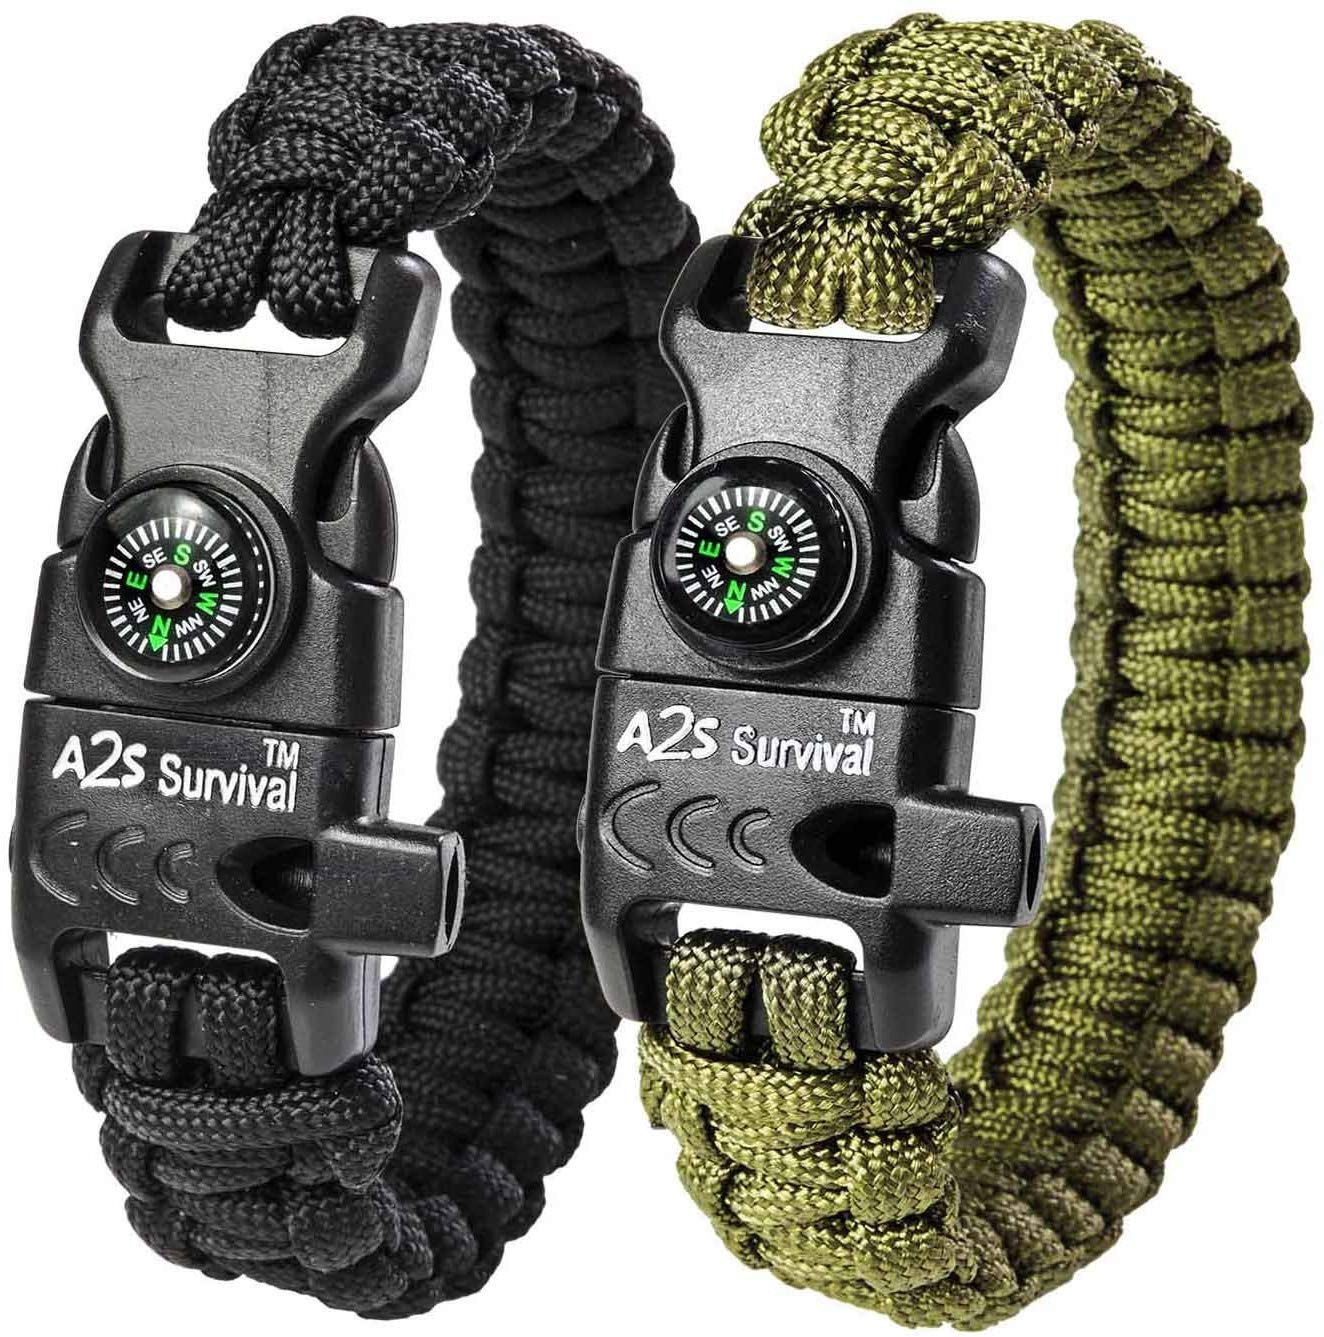 Camping hiking survival EDC fire starter waxed rope Pack of 2